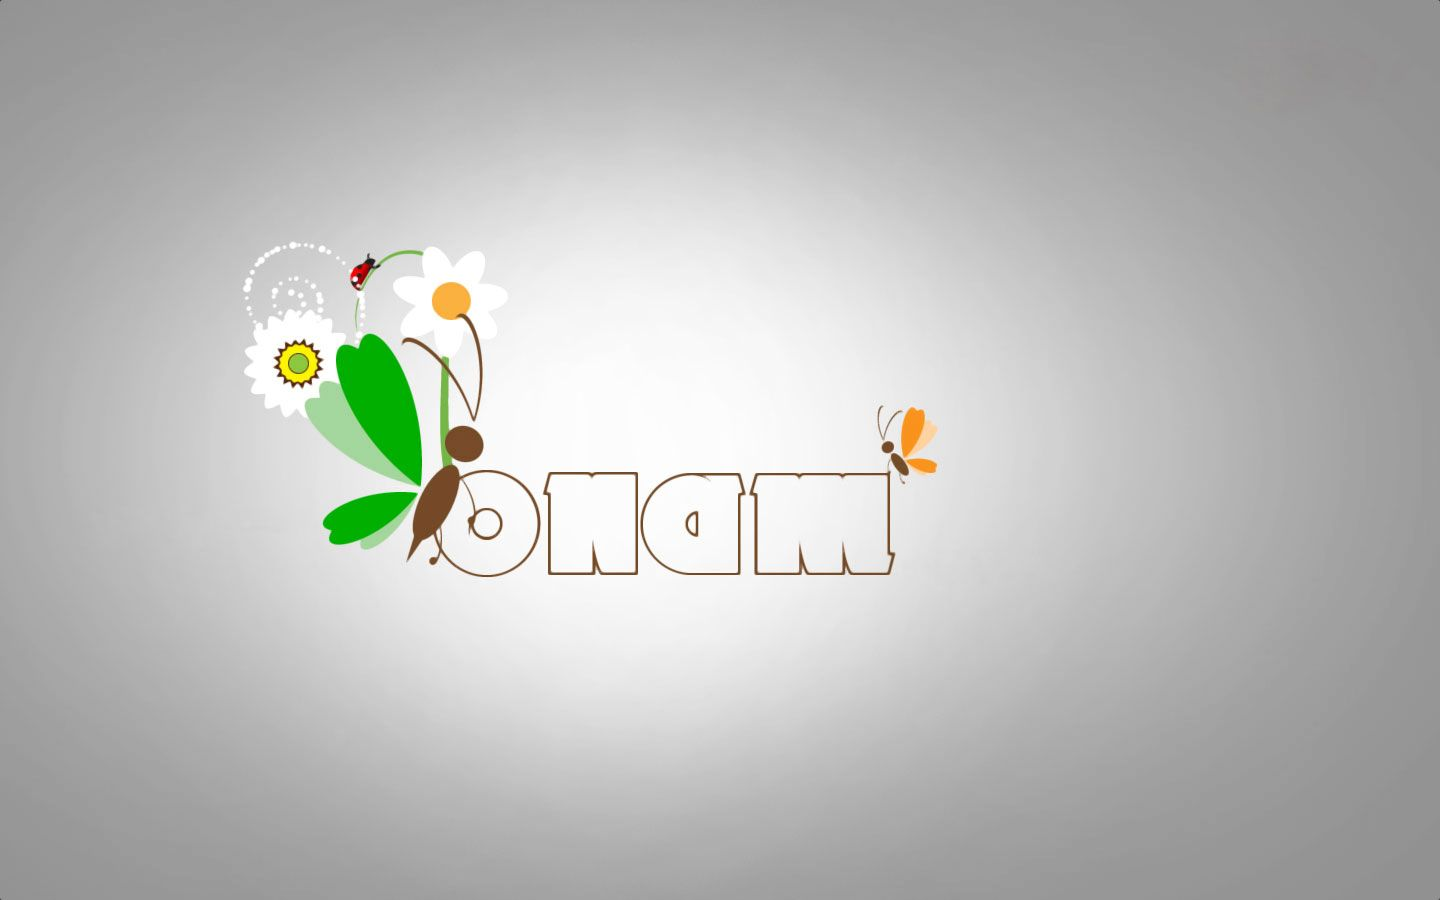 Happy onam 2014 onam wishes quotes and greetings pinterest happy onam 2014 wishes and greetings wallpapers pictures and images in hd and resolutions happy onam 2014 wishes wallpapers onashamsakal 2014 wallpapers kristyandbryce Image collections